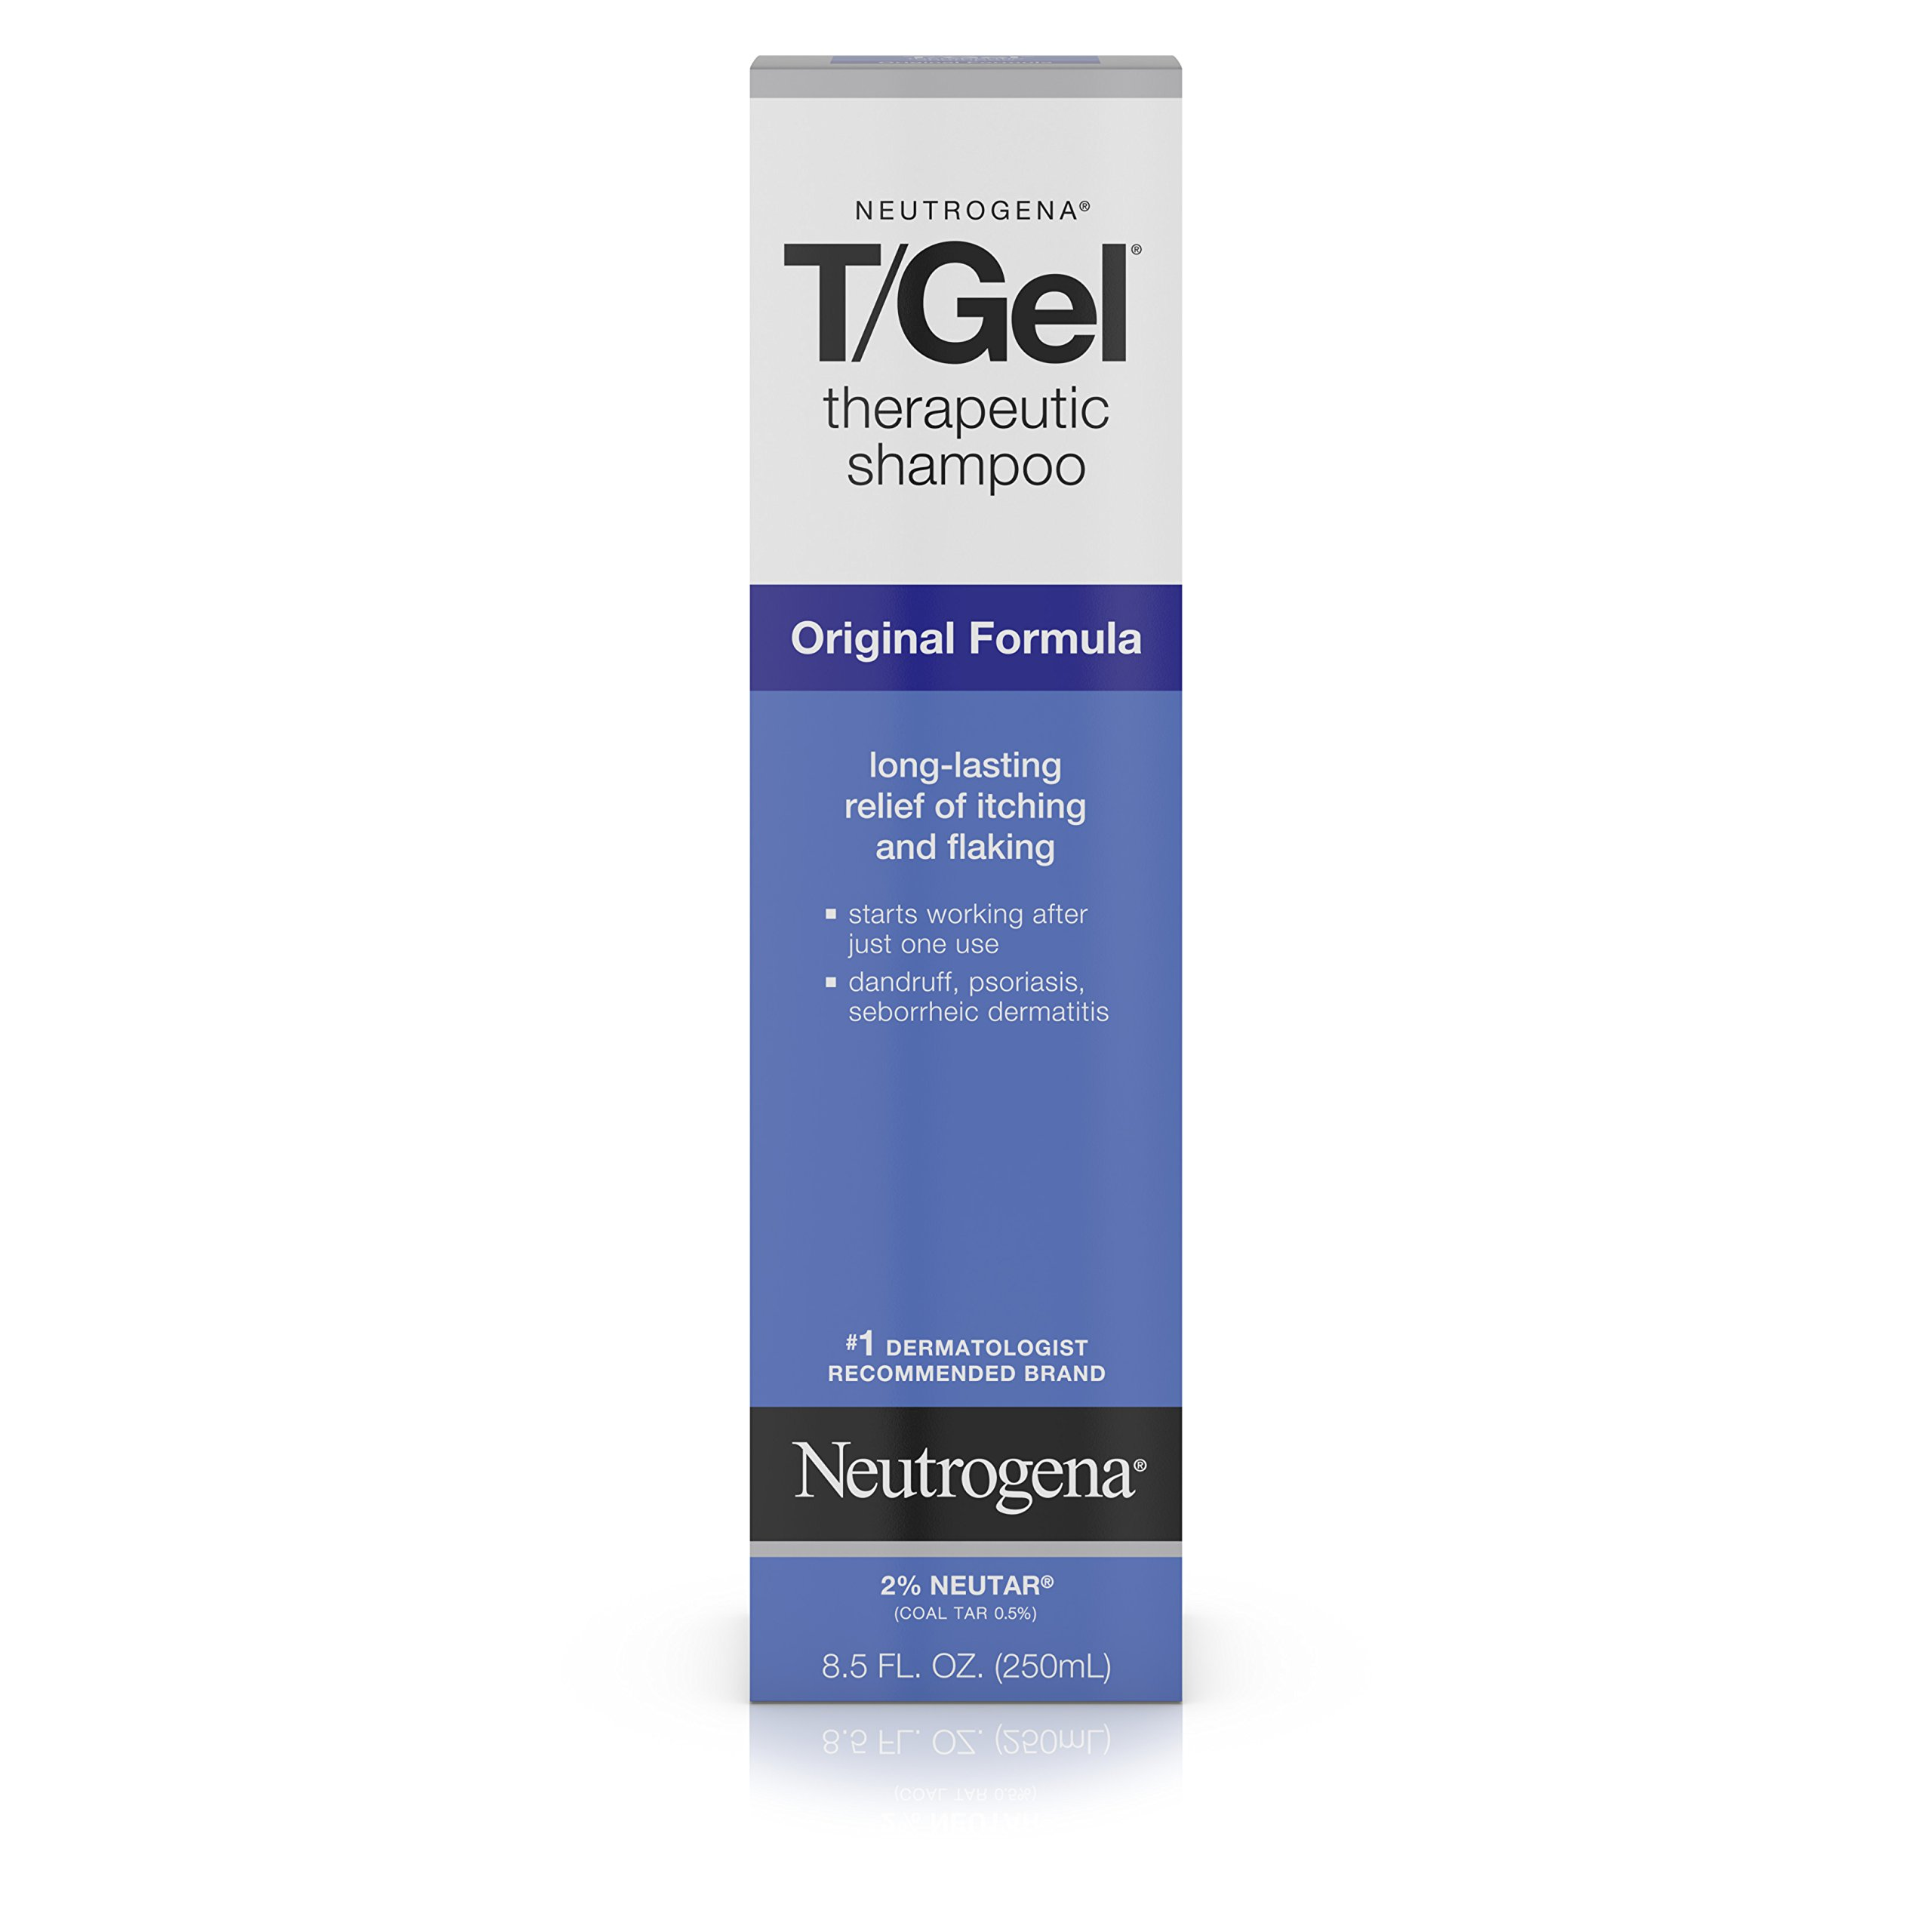 Neutrogena T/Gel Therapeutic Shampoo Original Formula, Dandruff Treatment, 8.5 Fl. Oz., (Pack of 2)